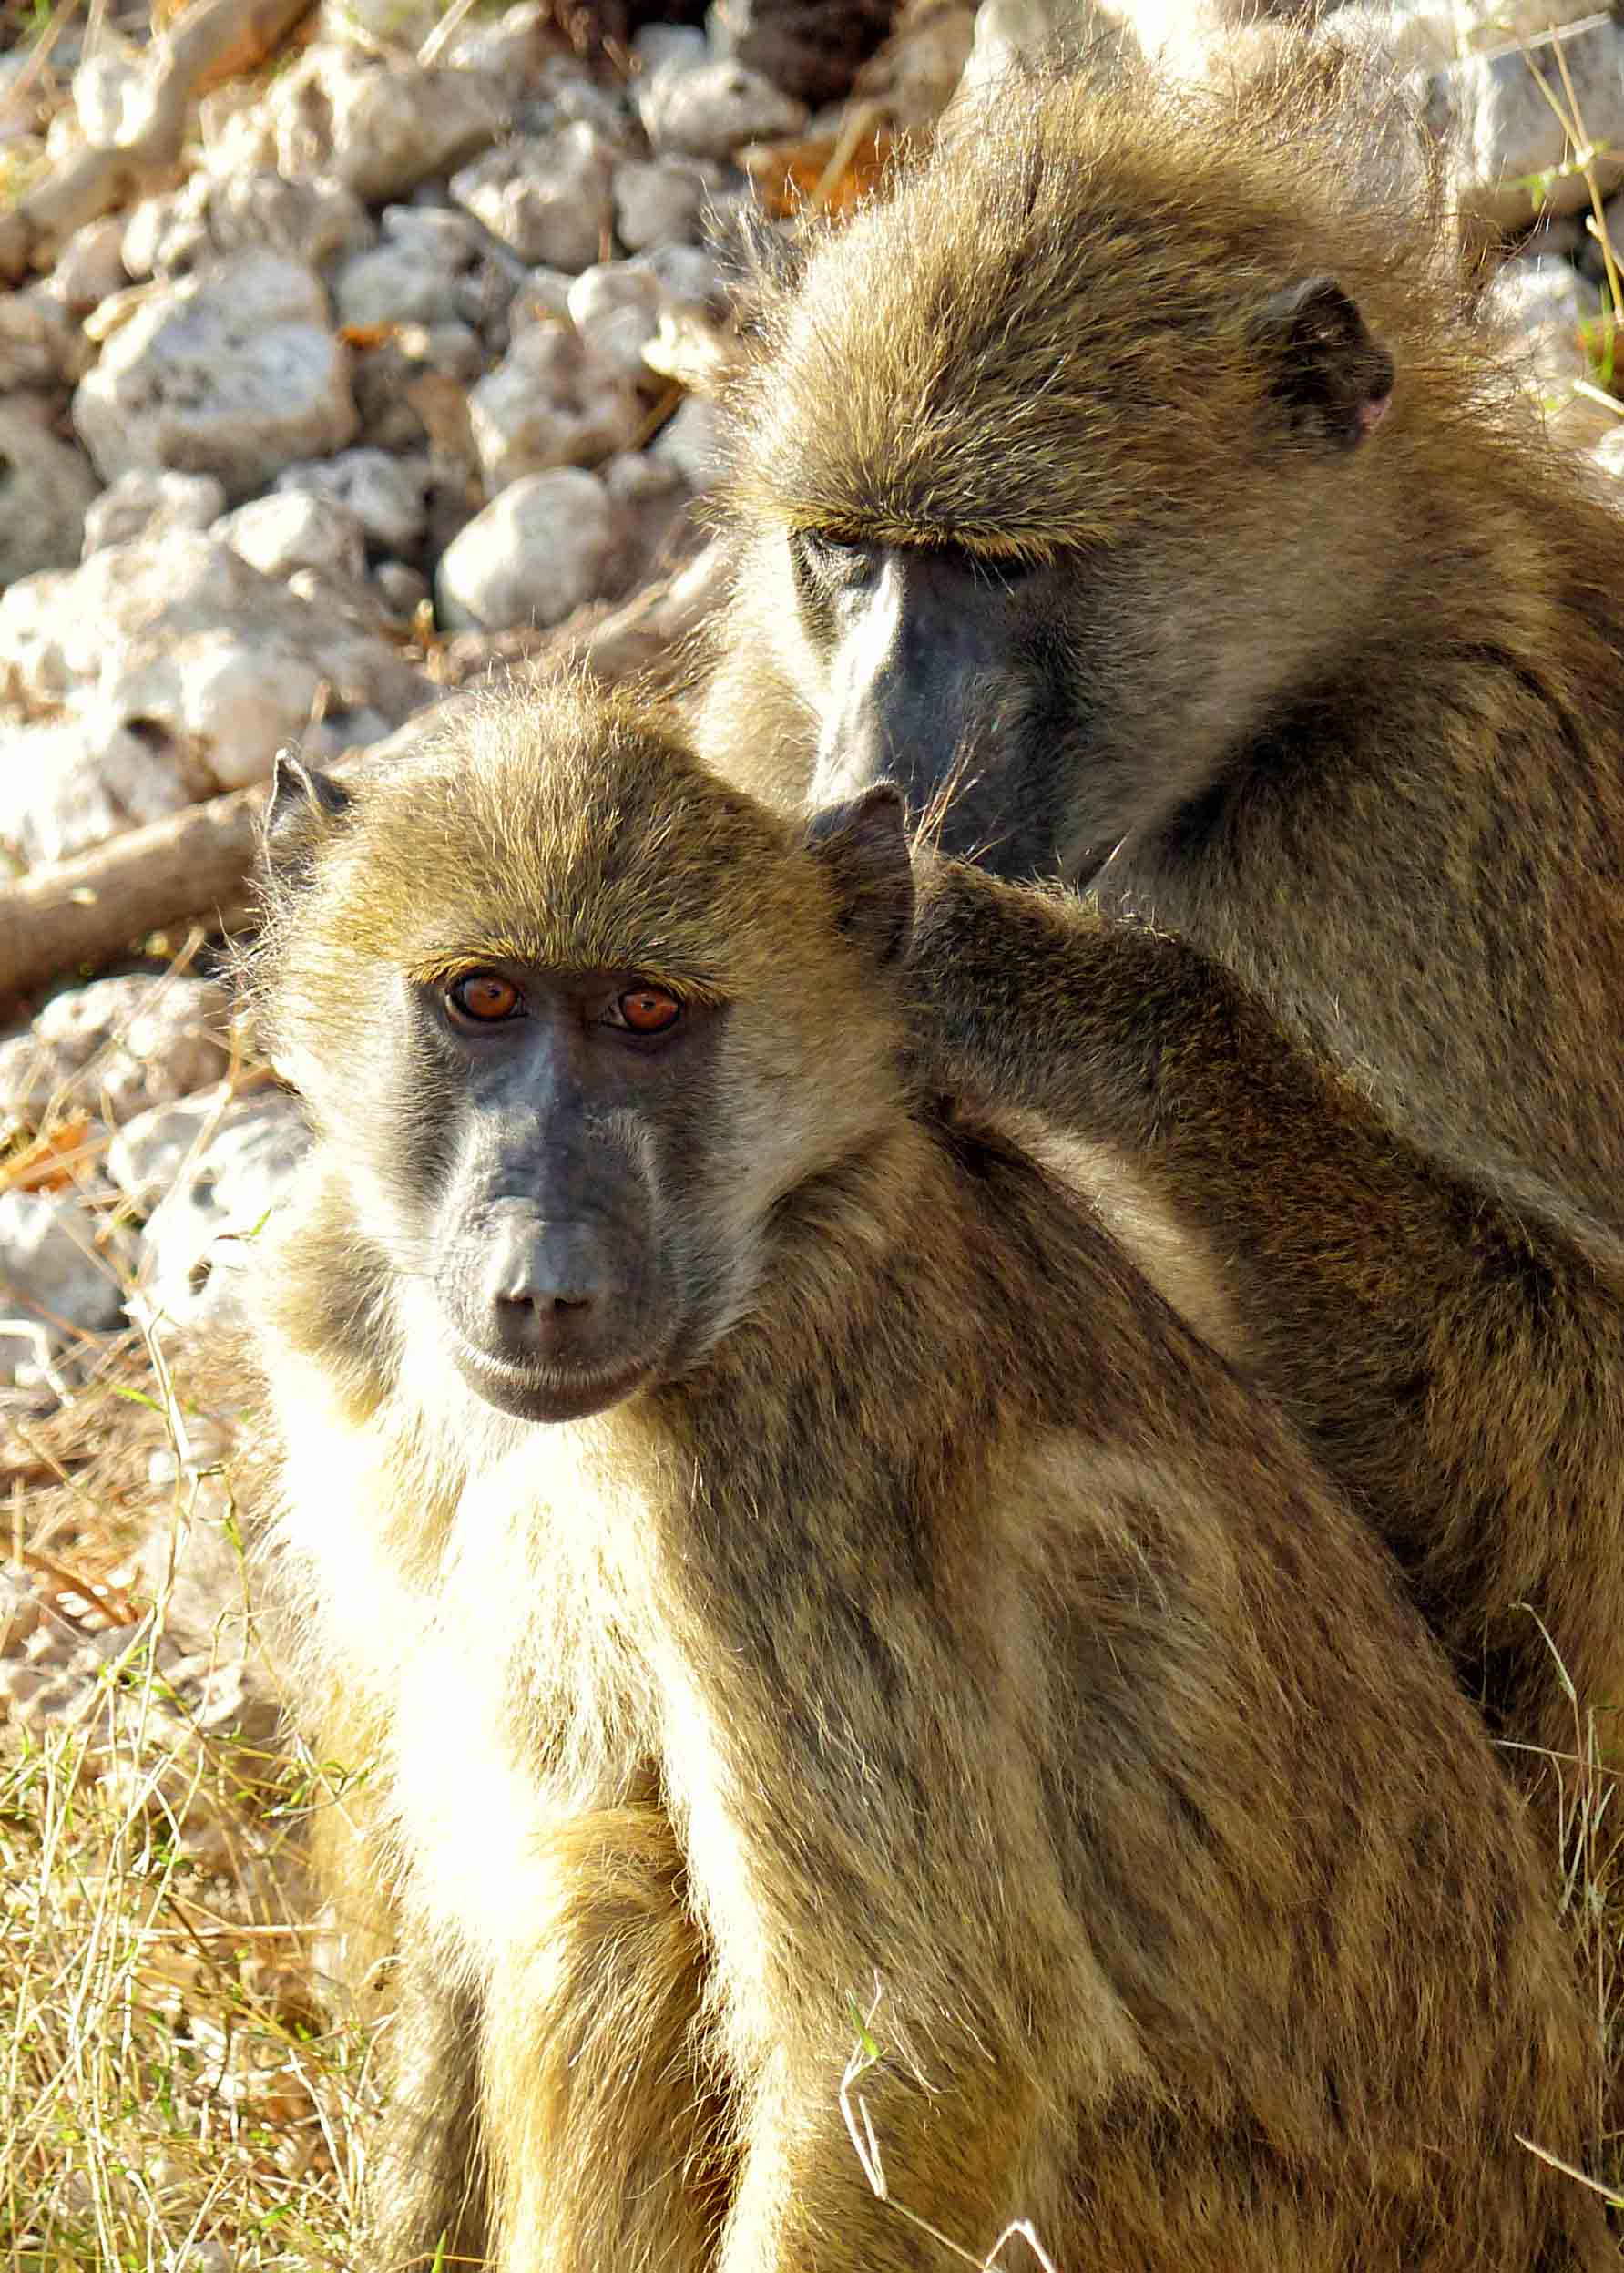 Two baboons grooming